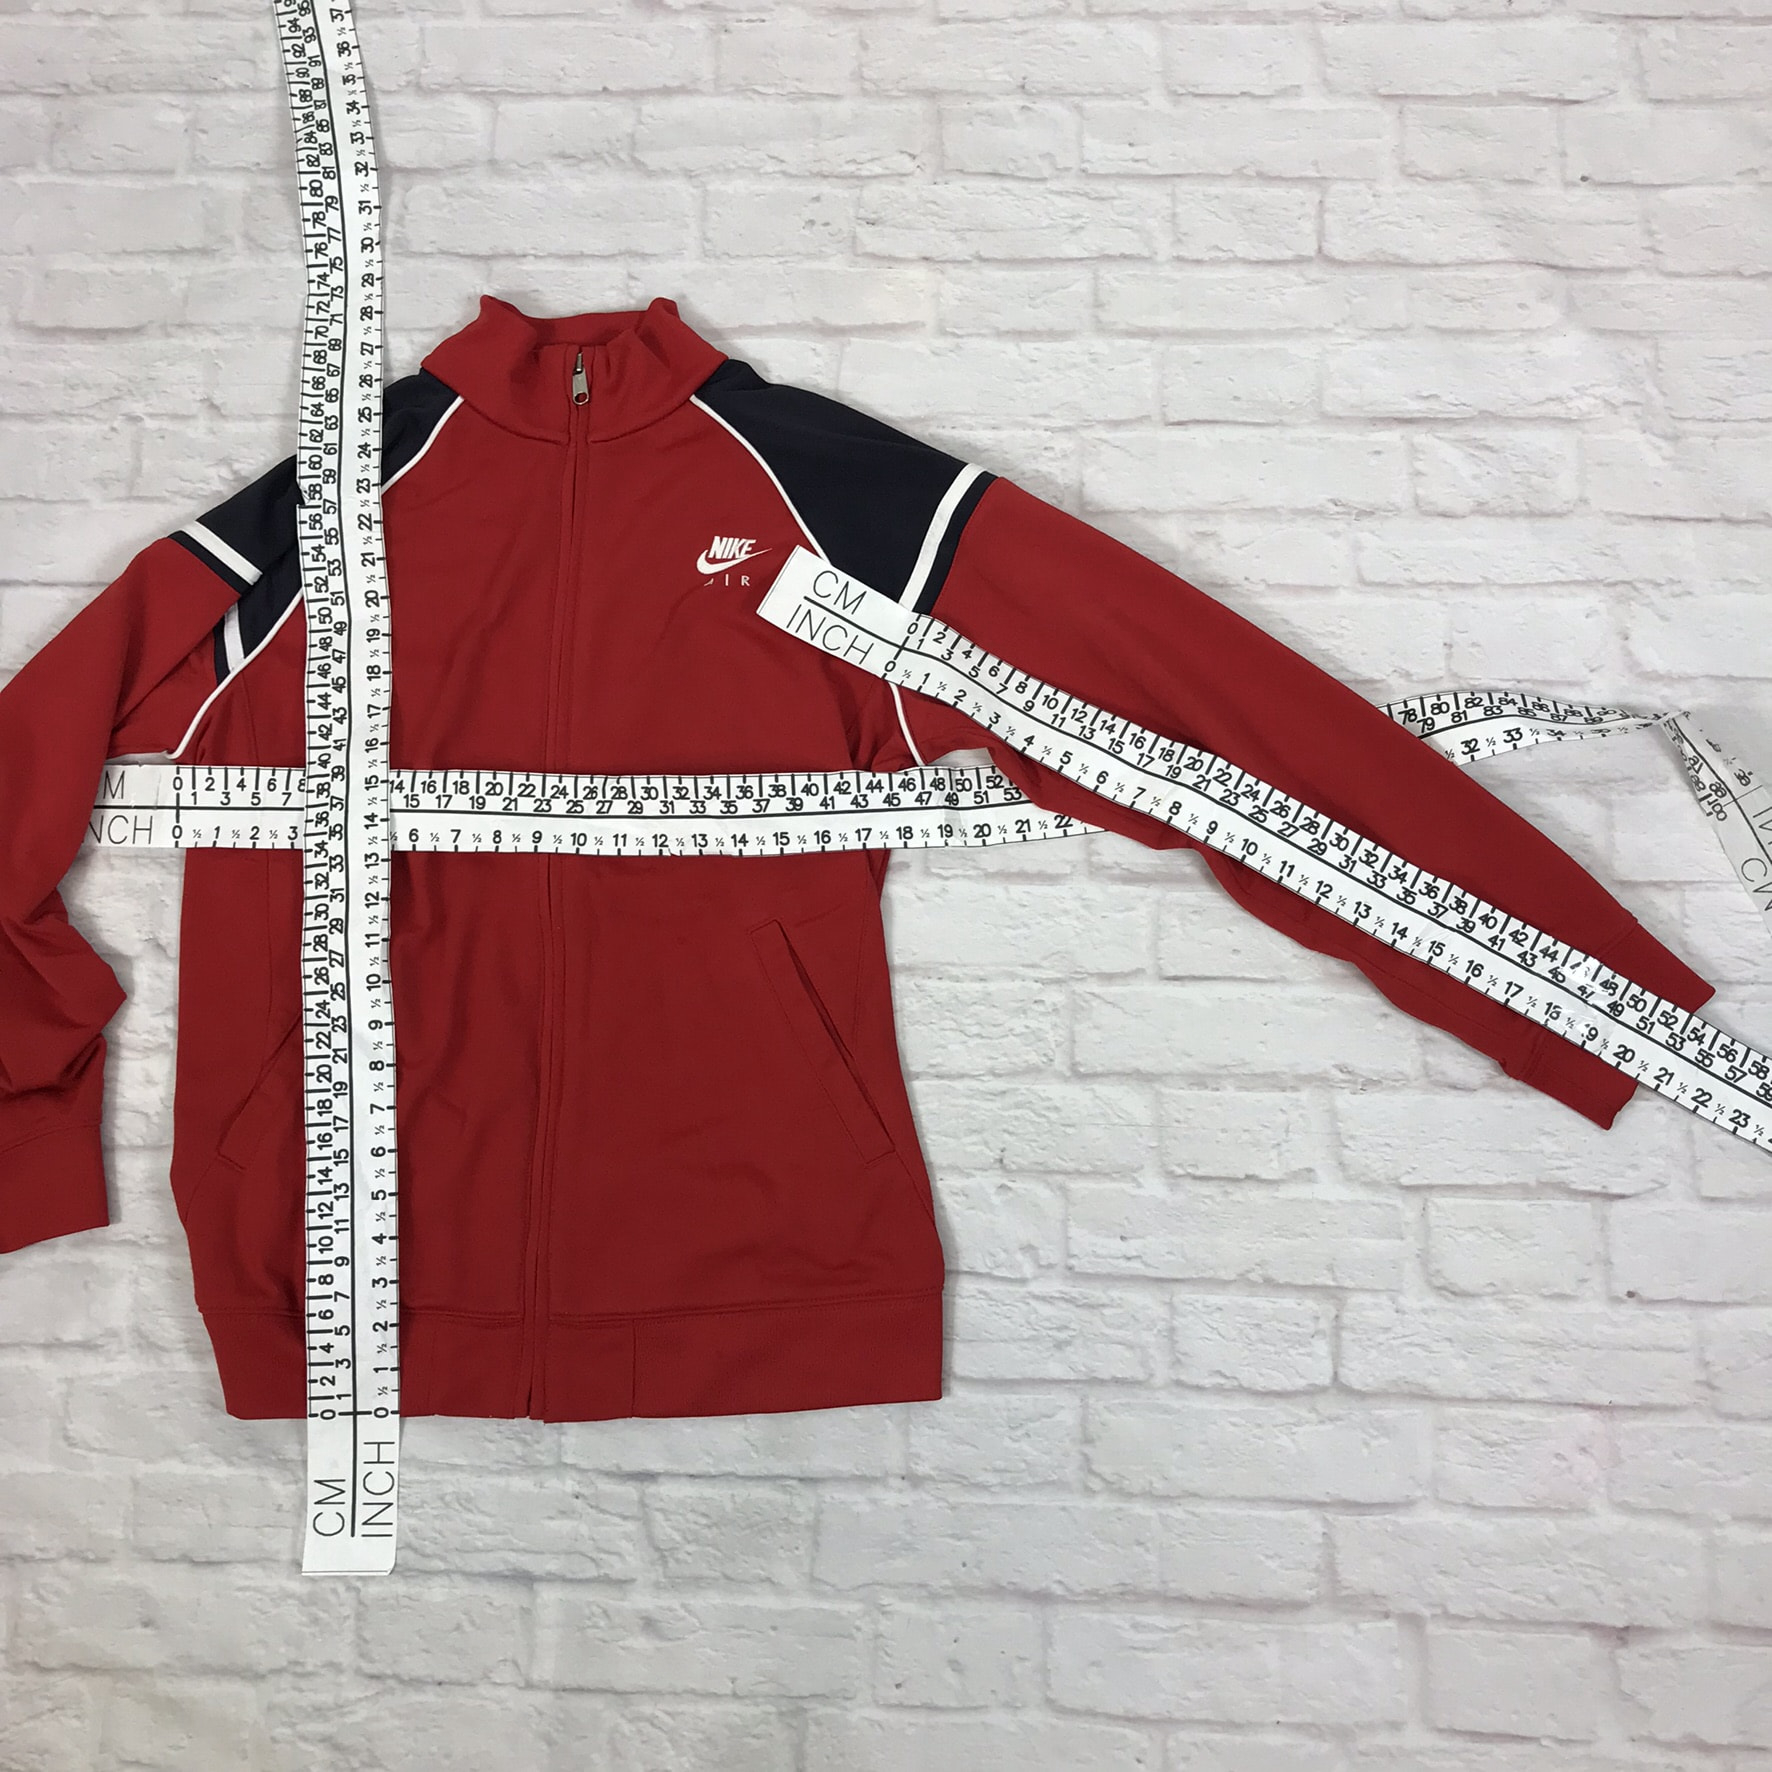 41e75884794 Unisex Vintage Nike track jacket in red and blue M